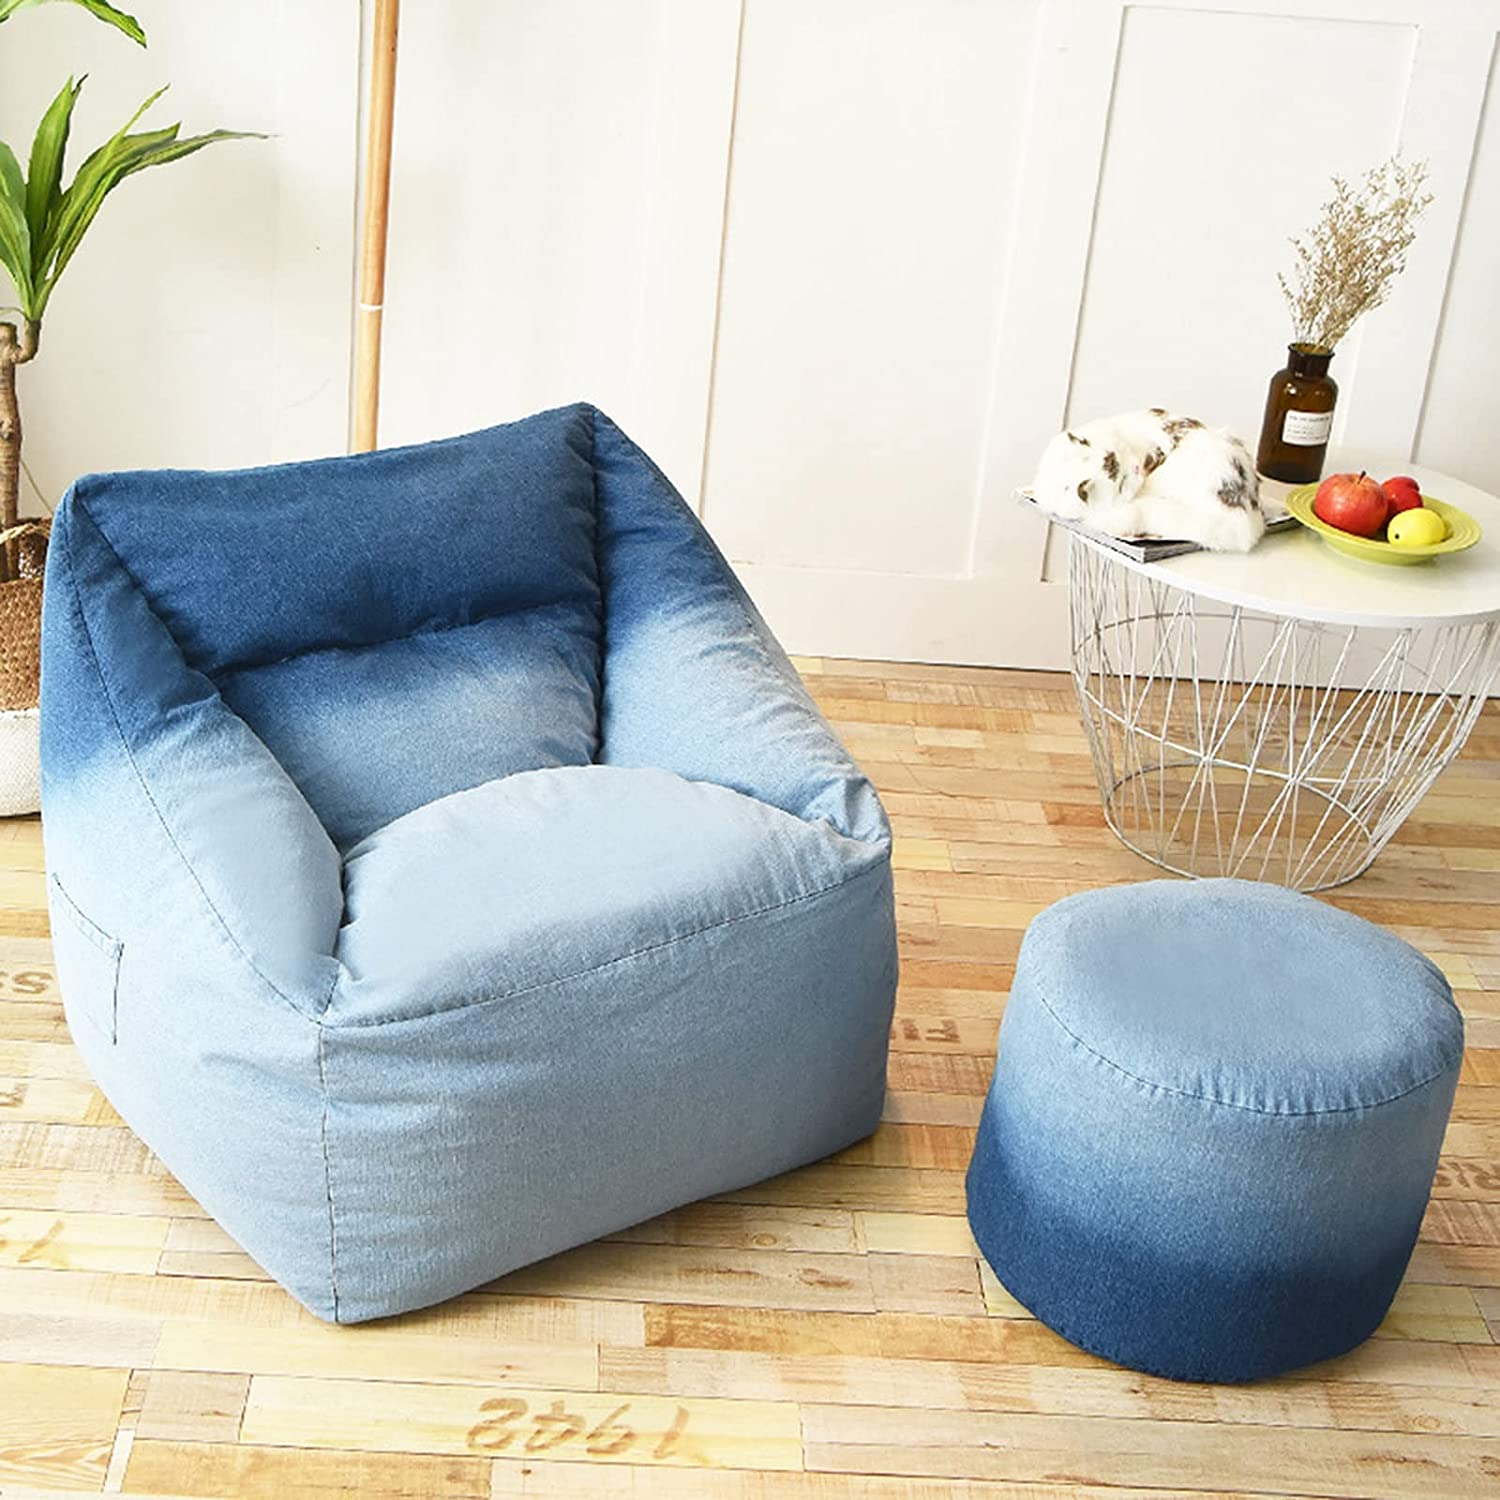 Bean Bag Chair Lazy Sofas Cover Popularity Discount is also underway Stuffed Stora Animal Filler No